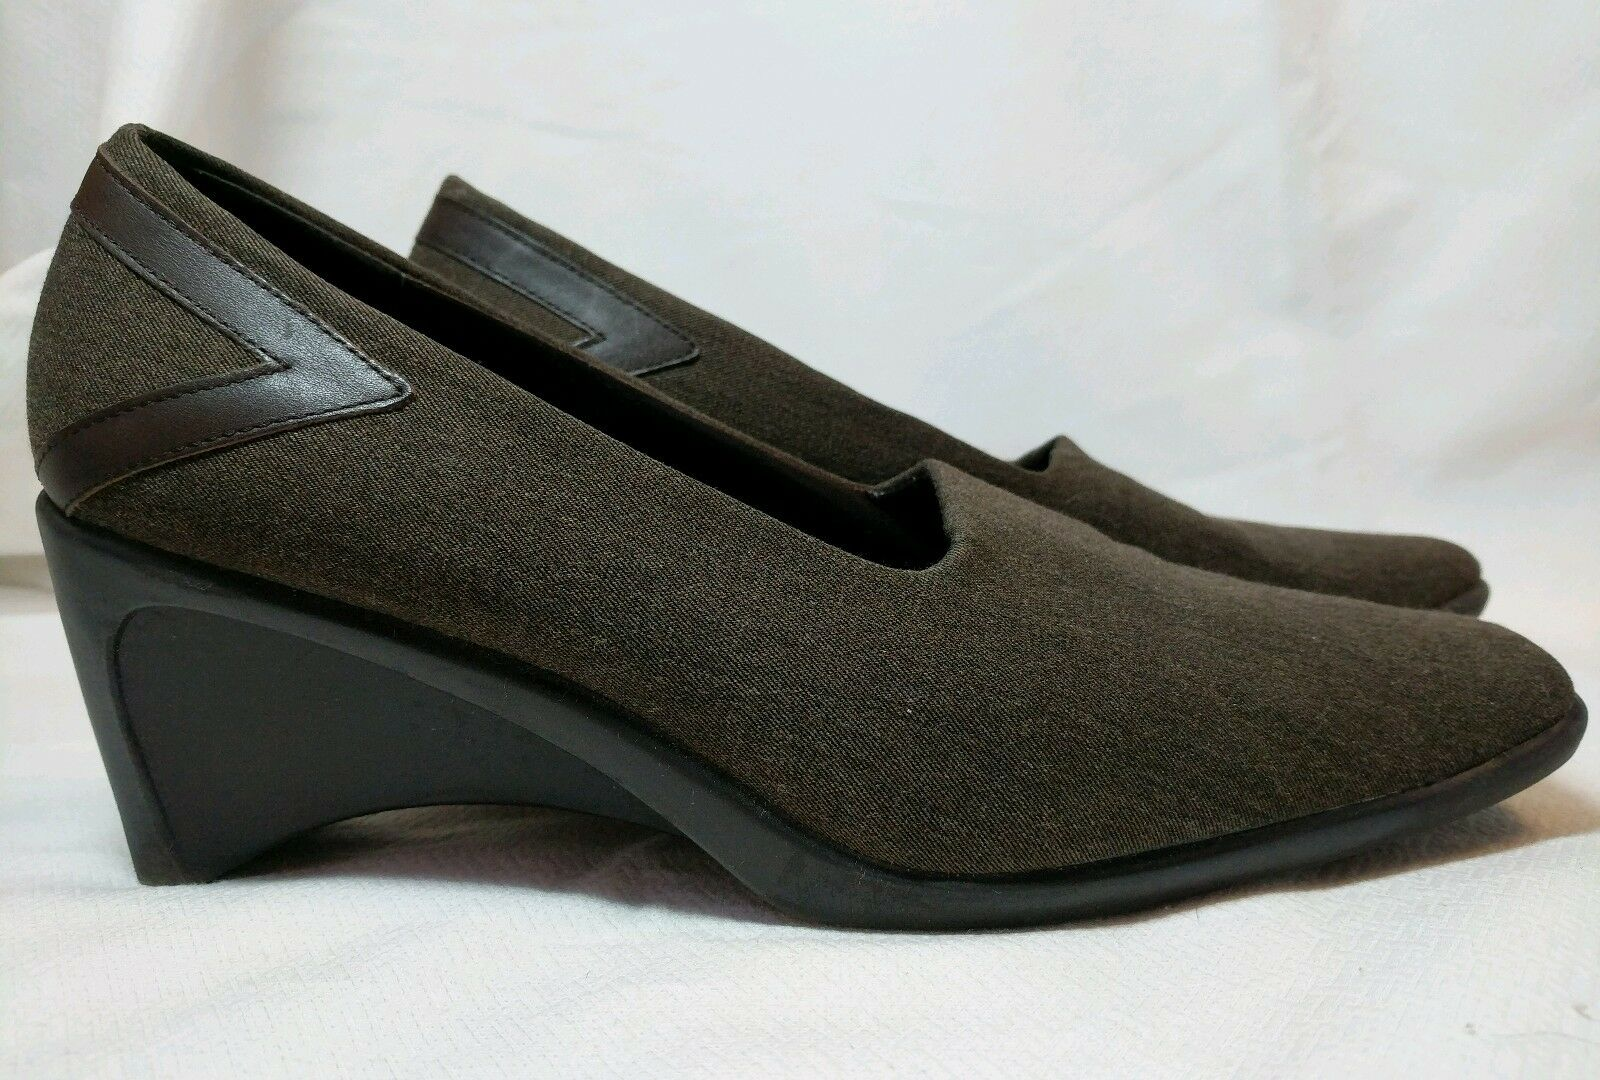 Moda Spana Brown Stretchy Fabric Wedge Accents Heel Size 8M Leather Accents Wedge Pumps Shoe 810a4e